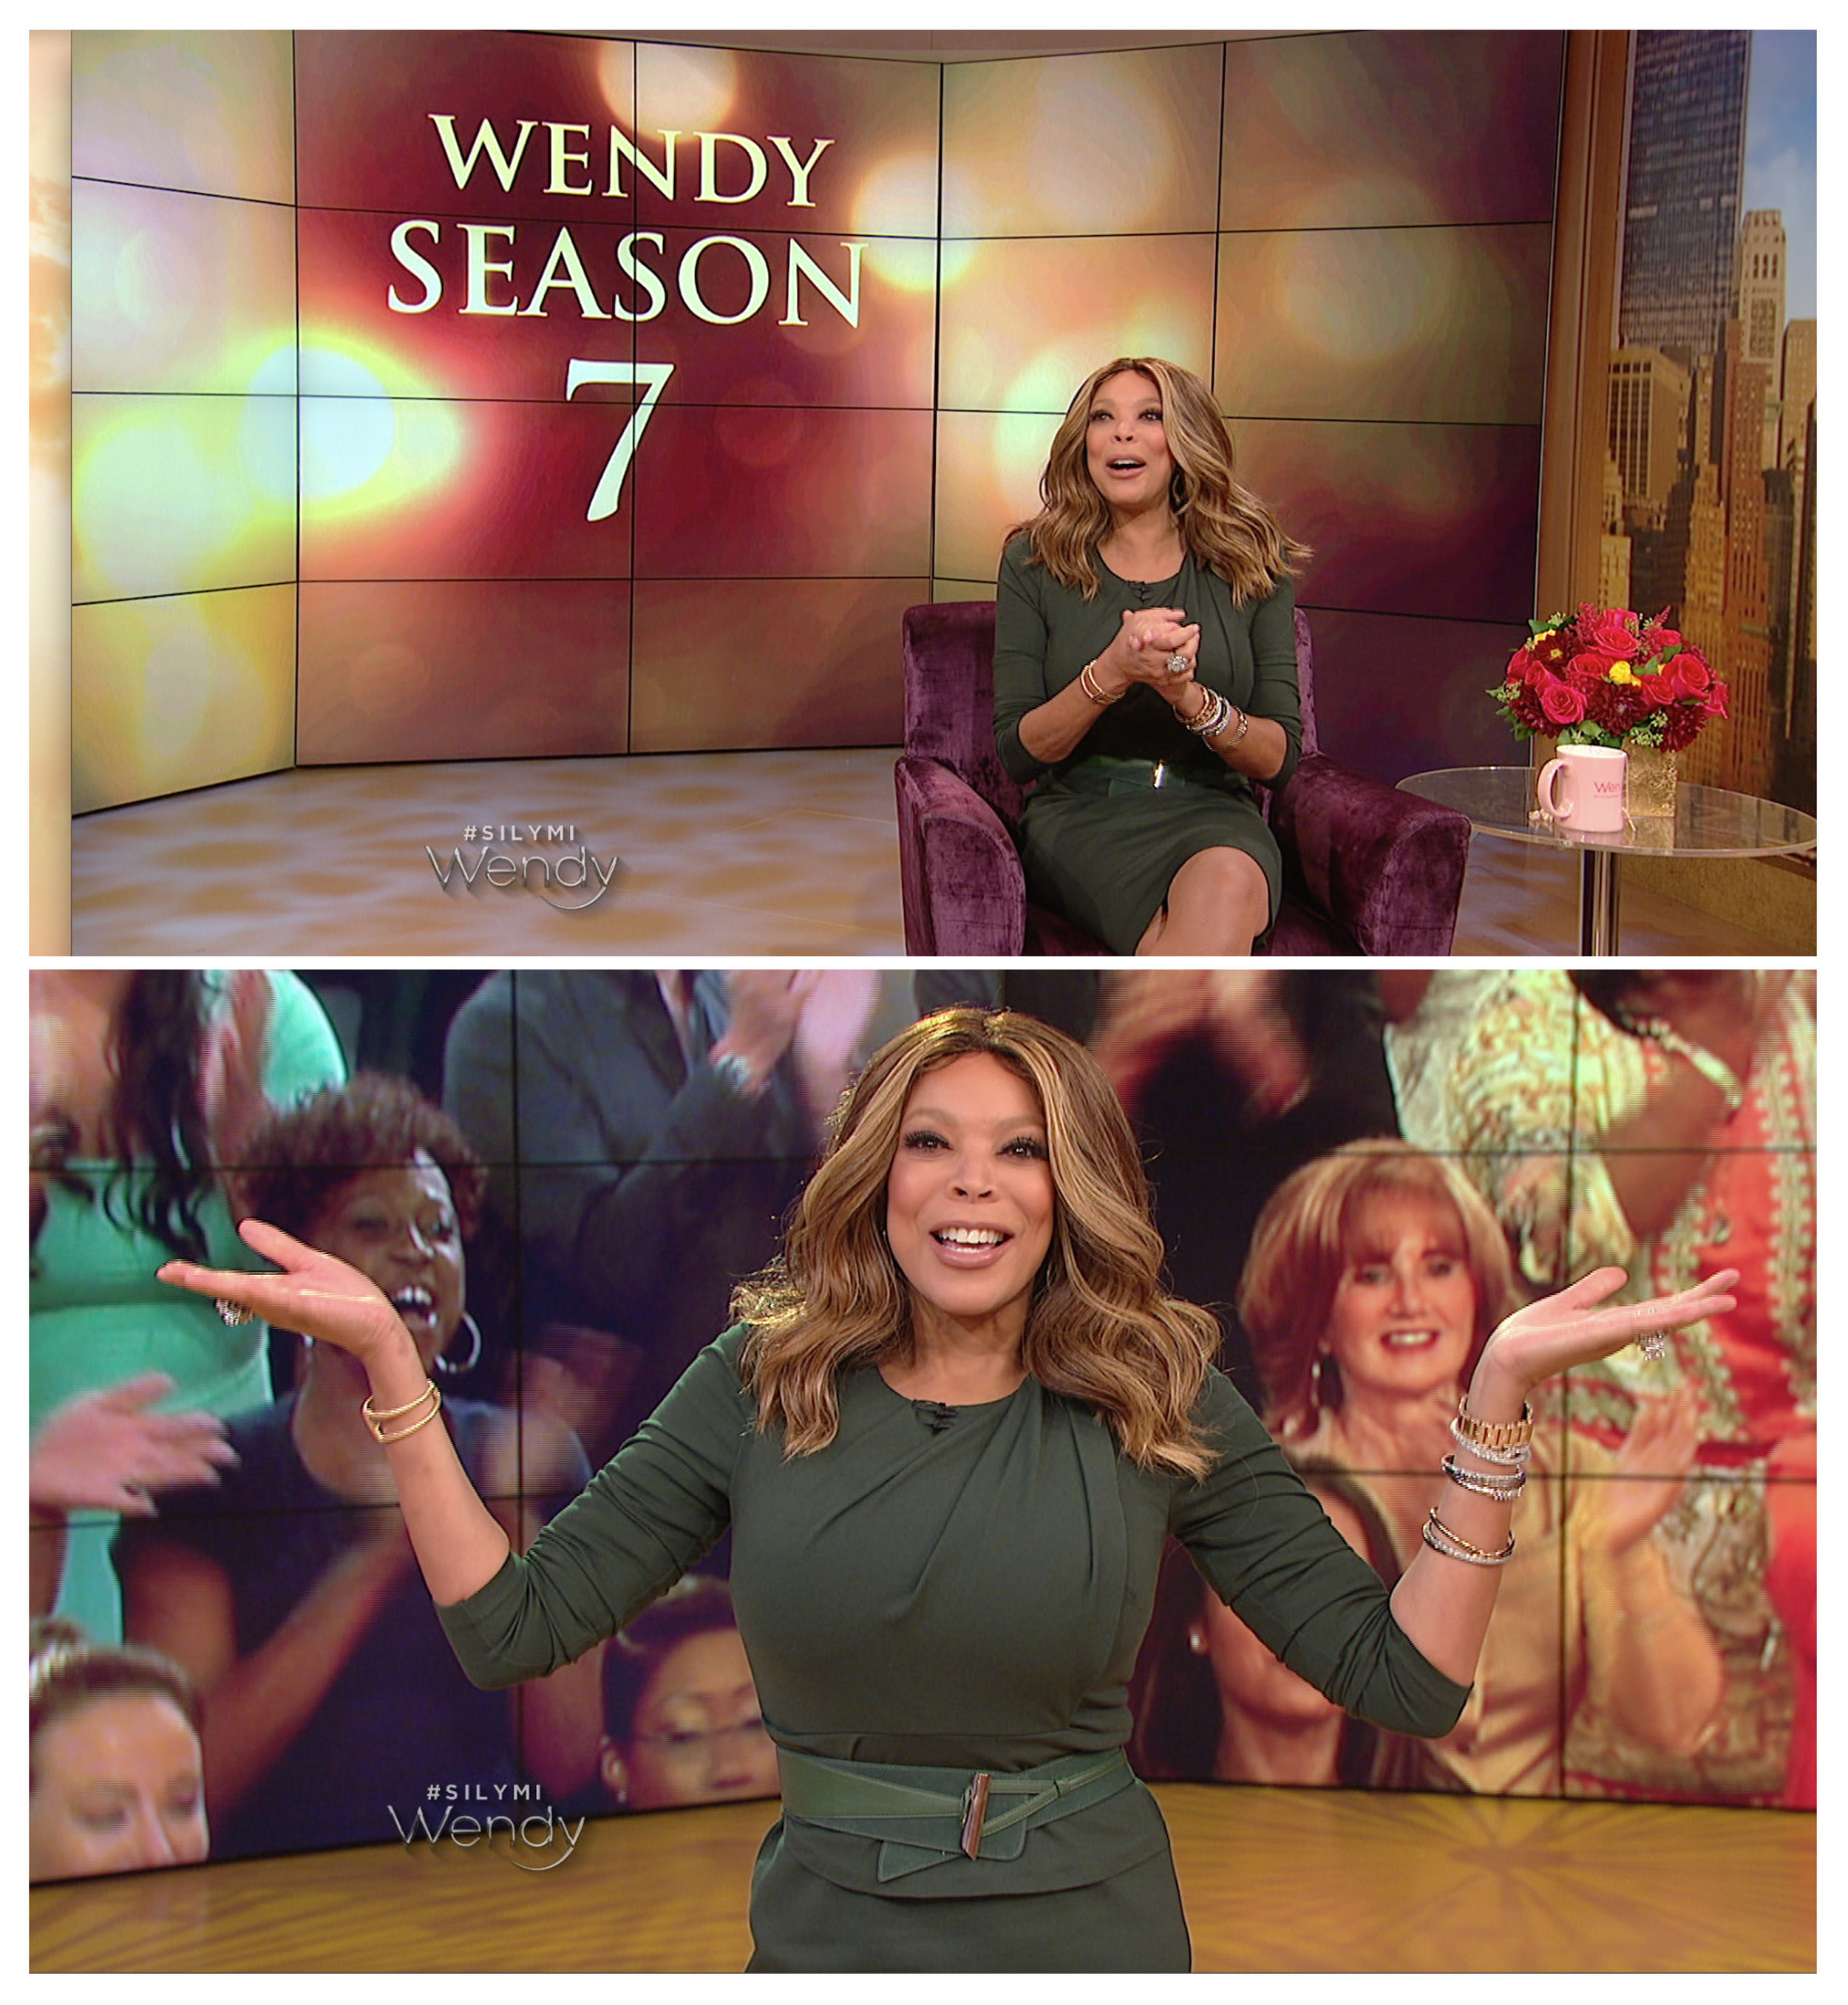 WENDY WILLIAMS SHOW - SEASON 7 PREMIERE - SEPTEMBER 2015